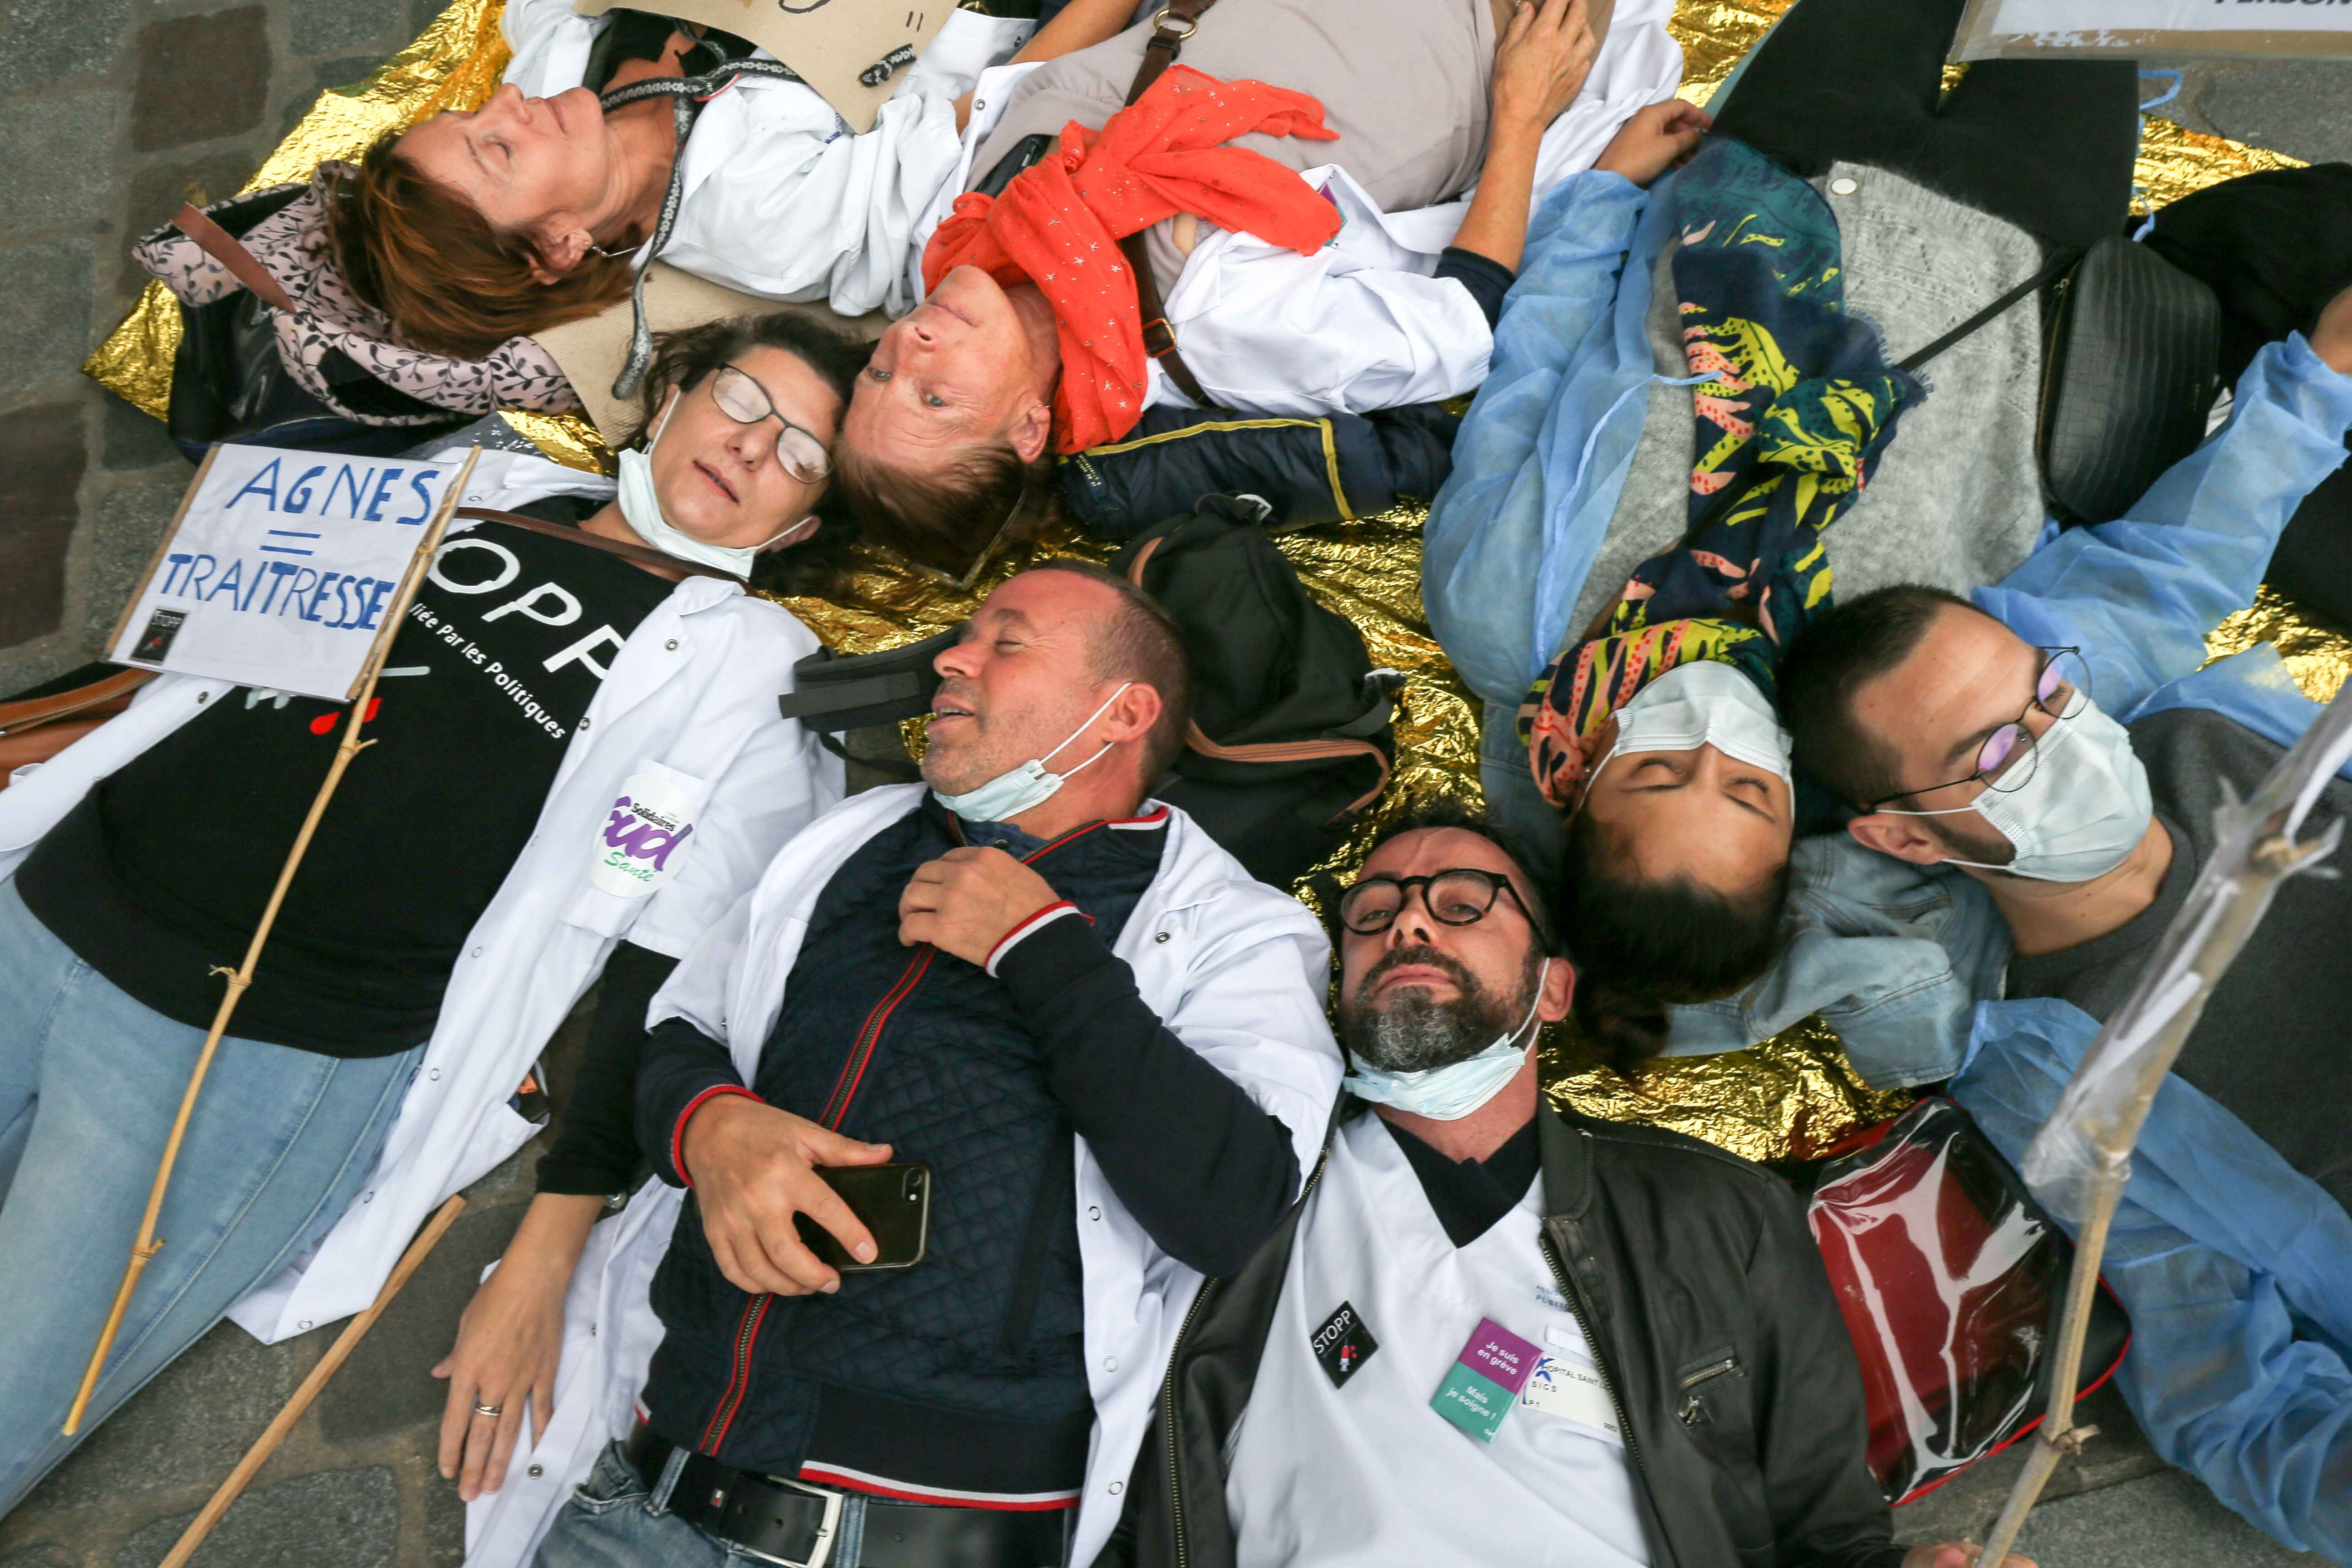 Doctors, nurses and cargivers make a die-in in Paris in front the Hotel de Ville, outside the headquarter of Assistance publique and Hôpitaux de Paris or AP-HP, public hospital system of Paris, to improve the working conditions in the French emergencies s